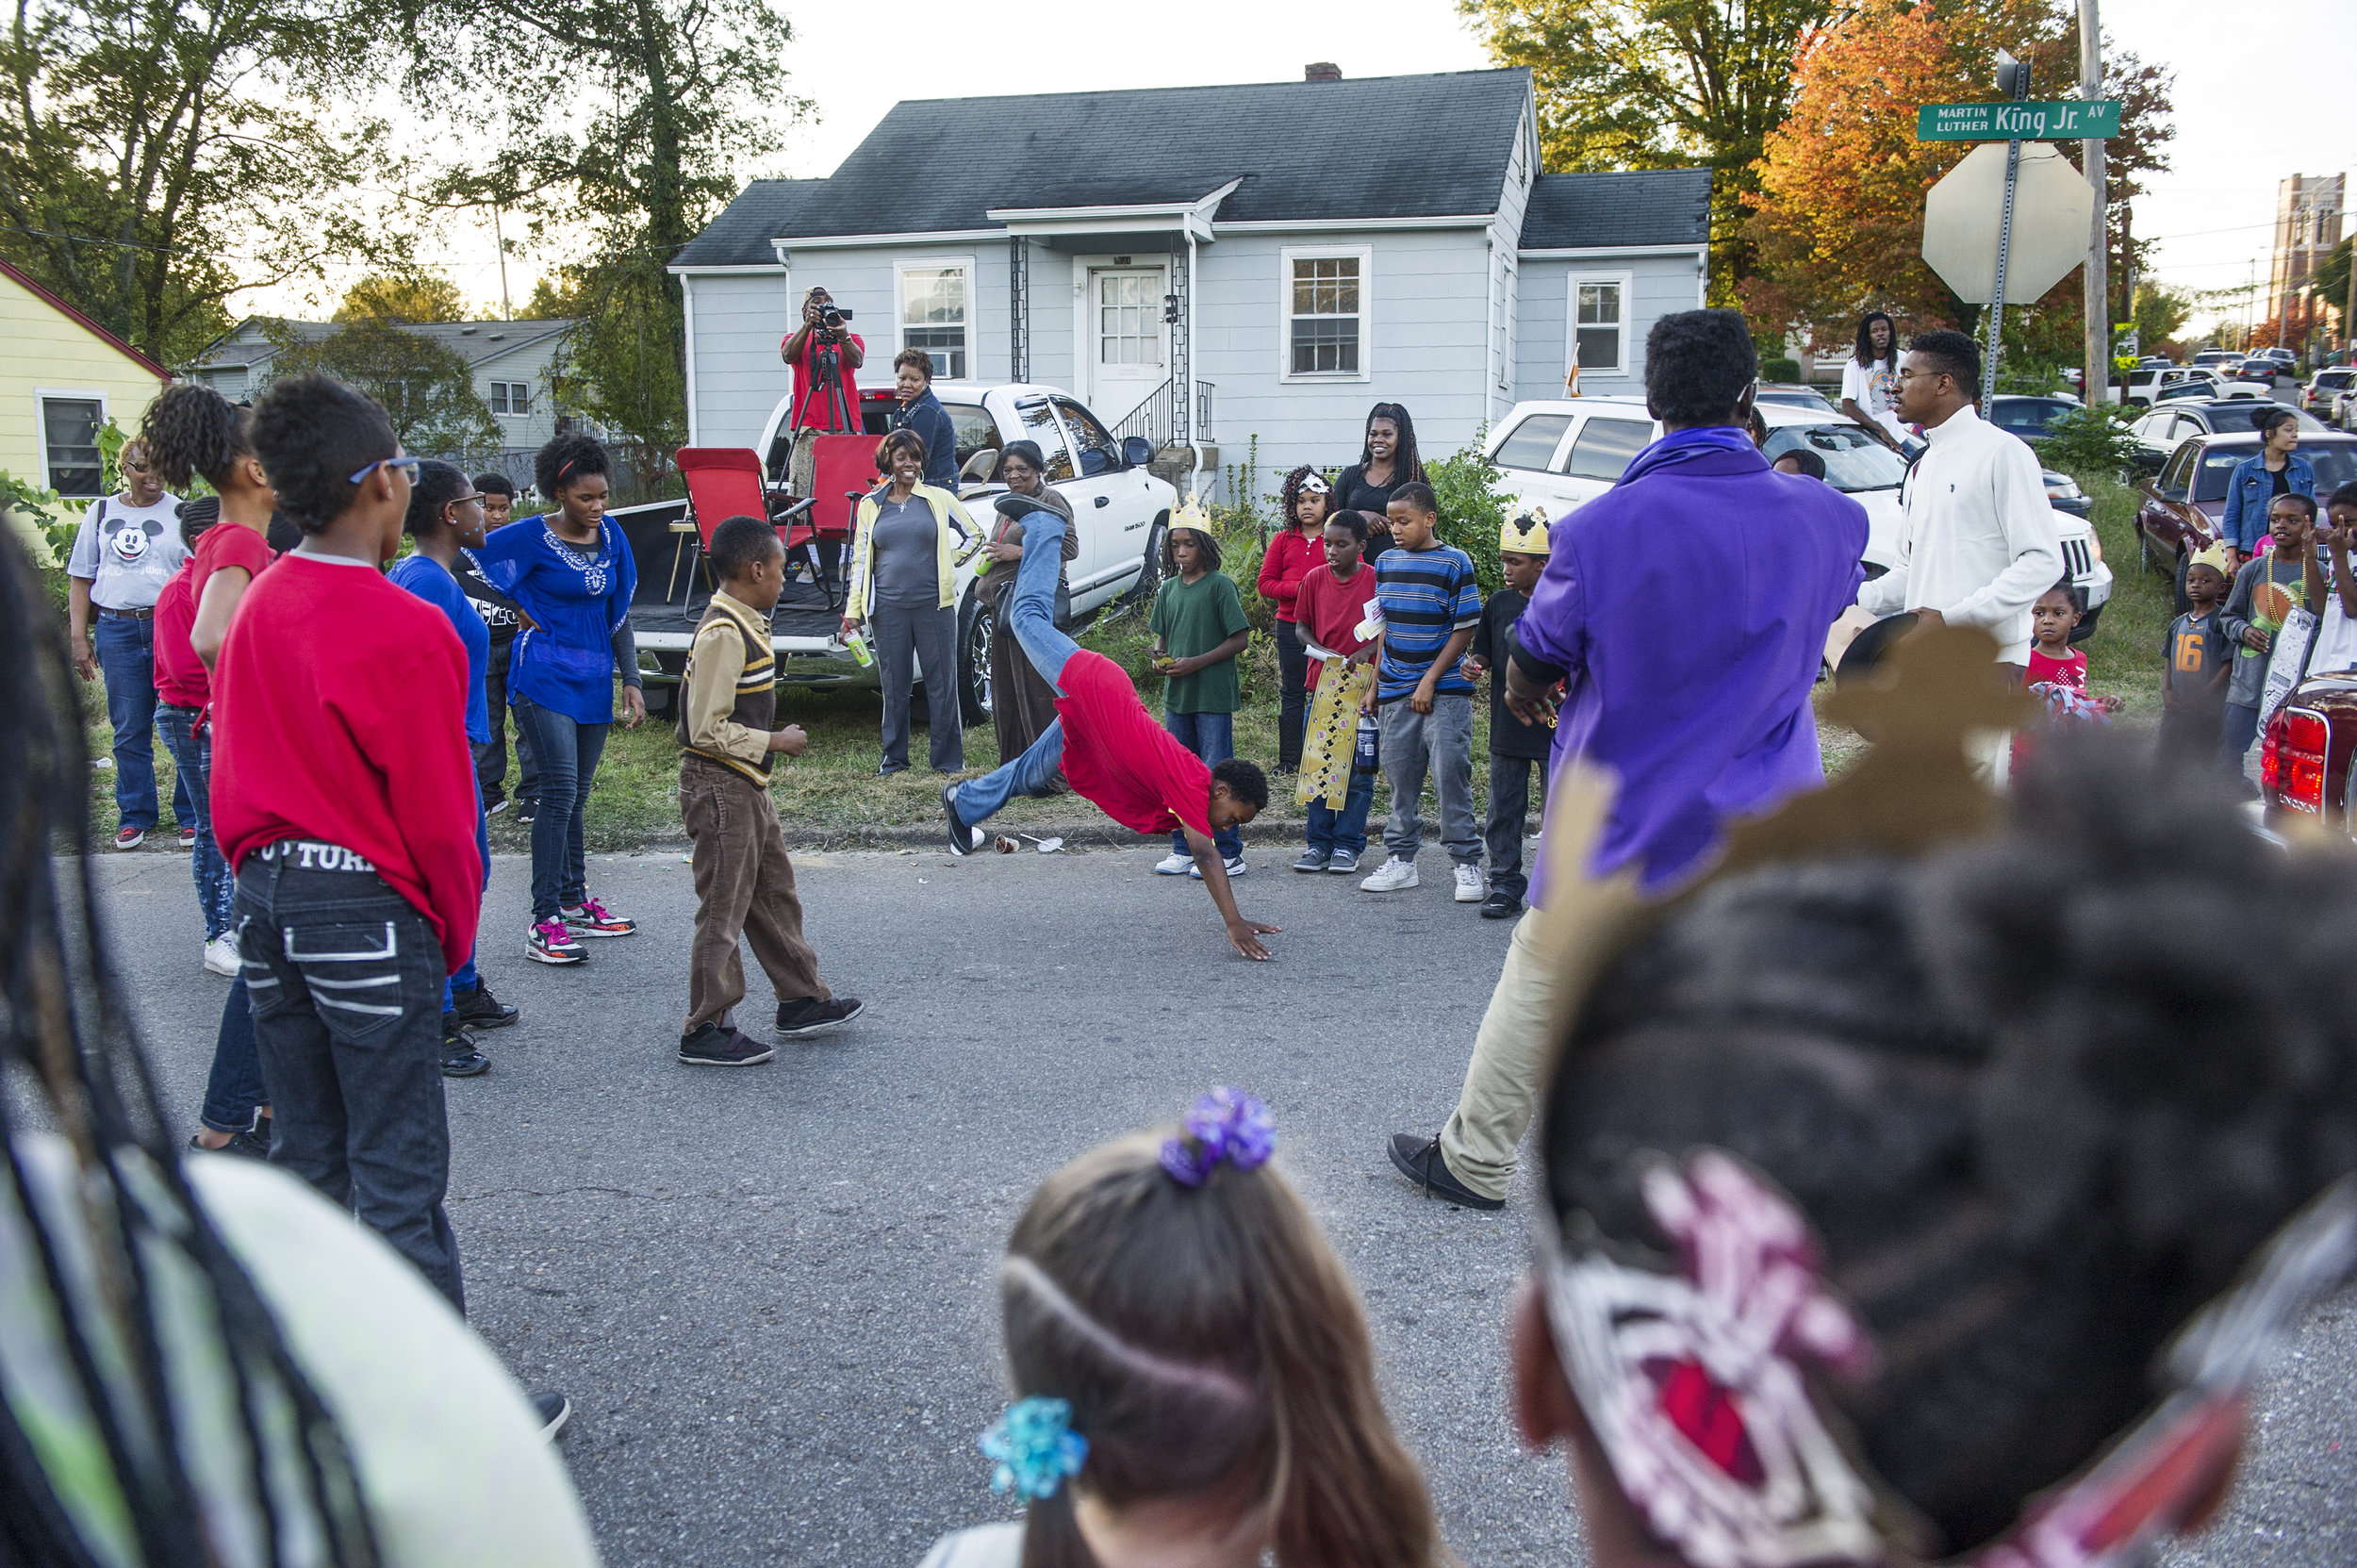 Parade goers watch Presean Brown, 10, (center) dance during the Divine Urban Expression Dream Team's performance at the Austin East high school homecoming parade Friday, Oct. 23, 2015.